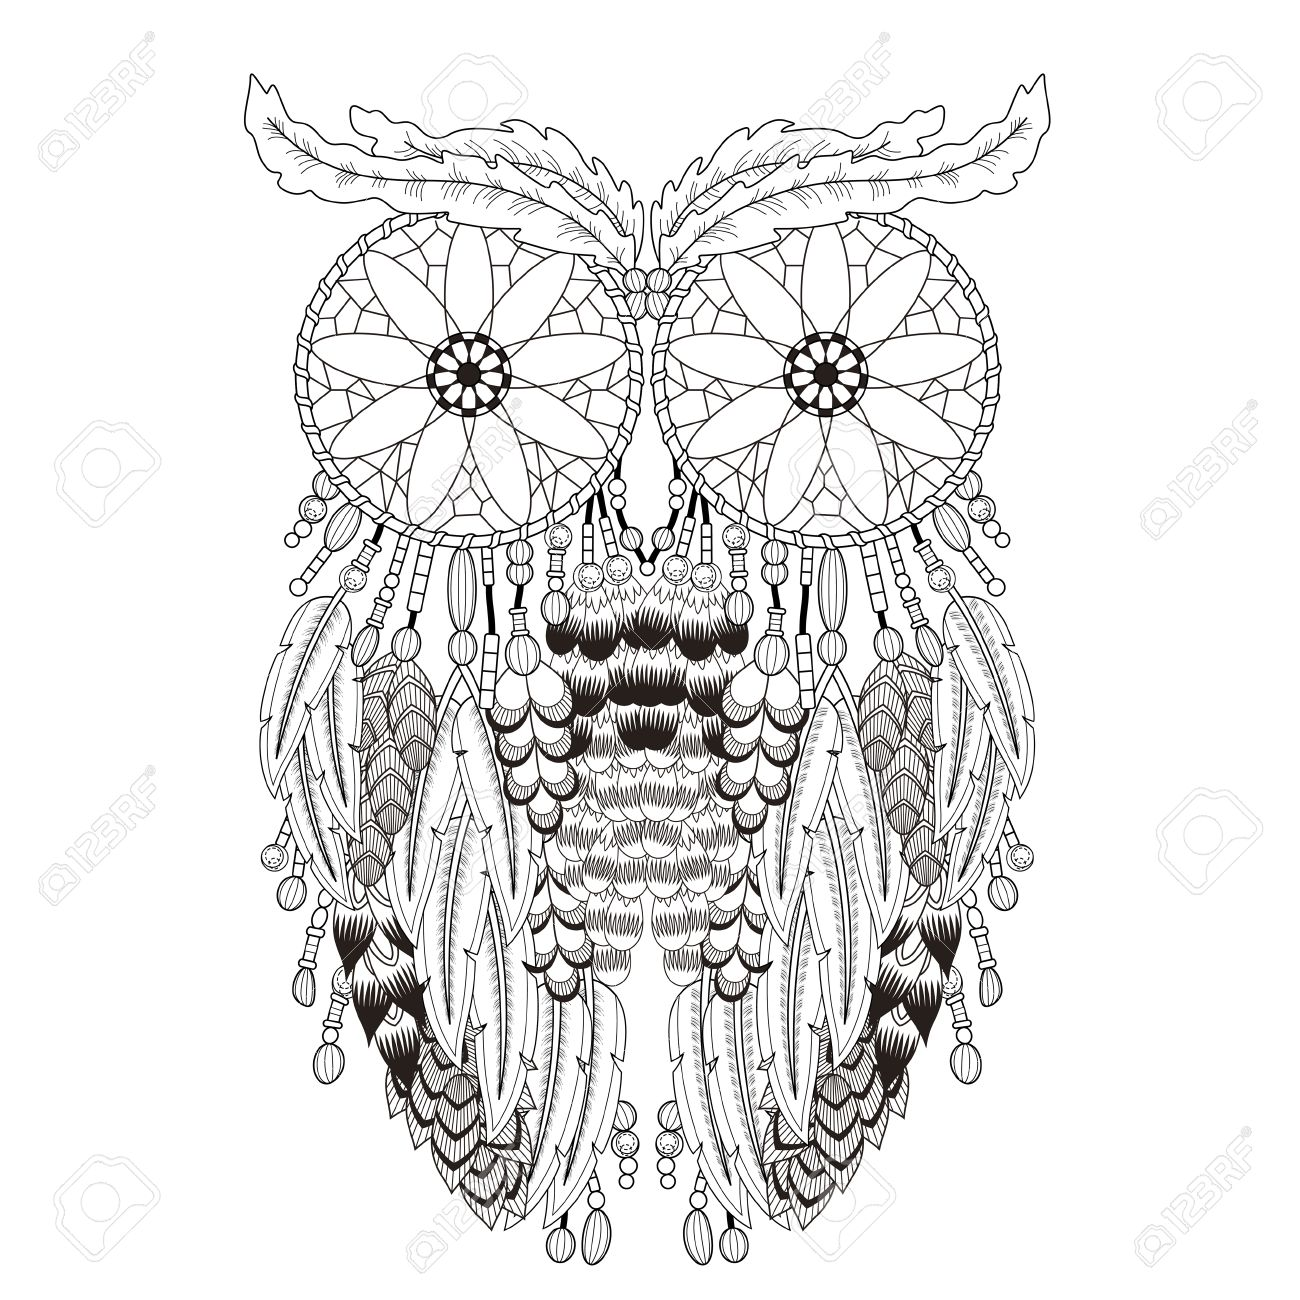 breathtaking owl coloring page with dream catchers in exquisite